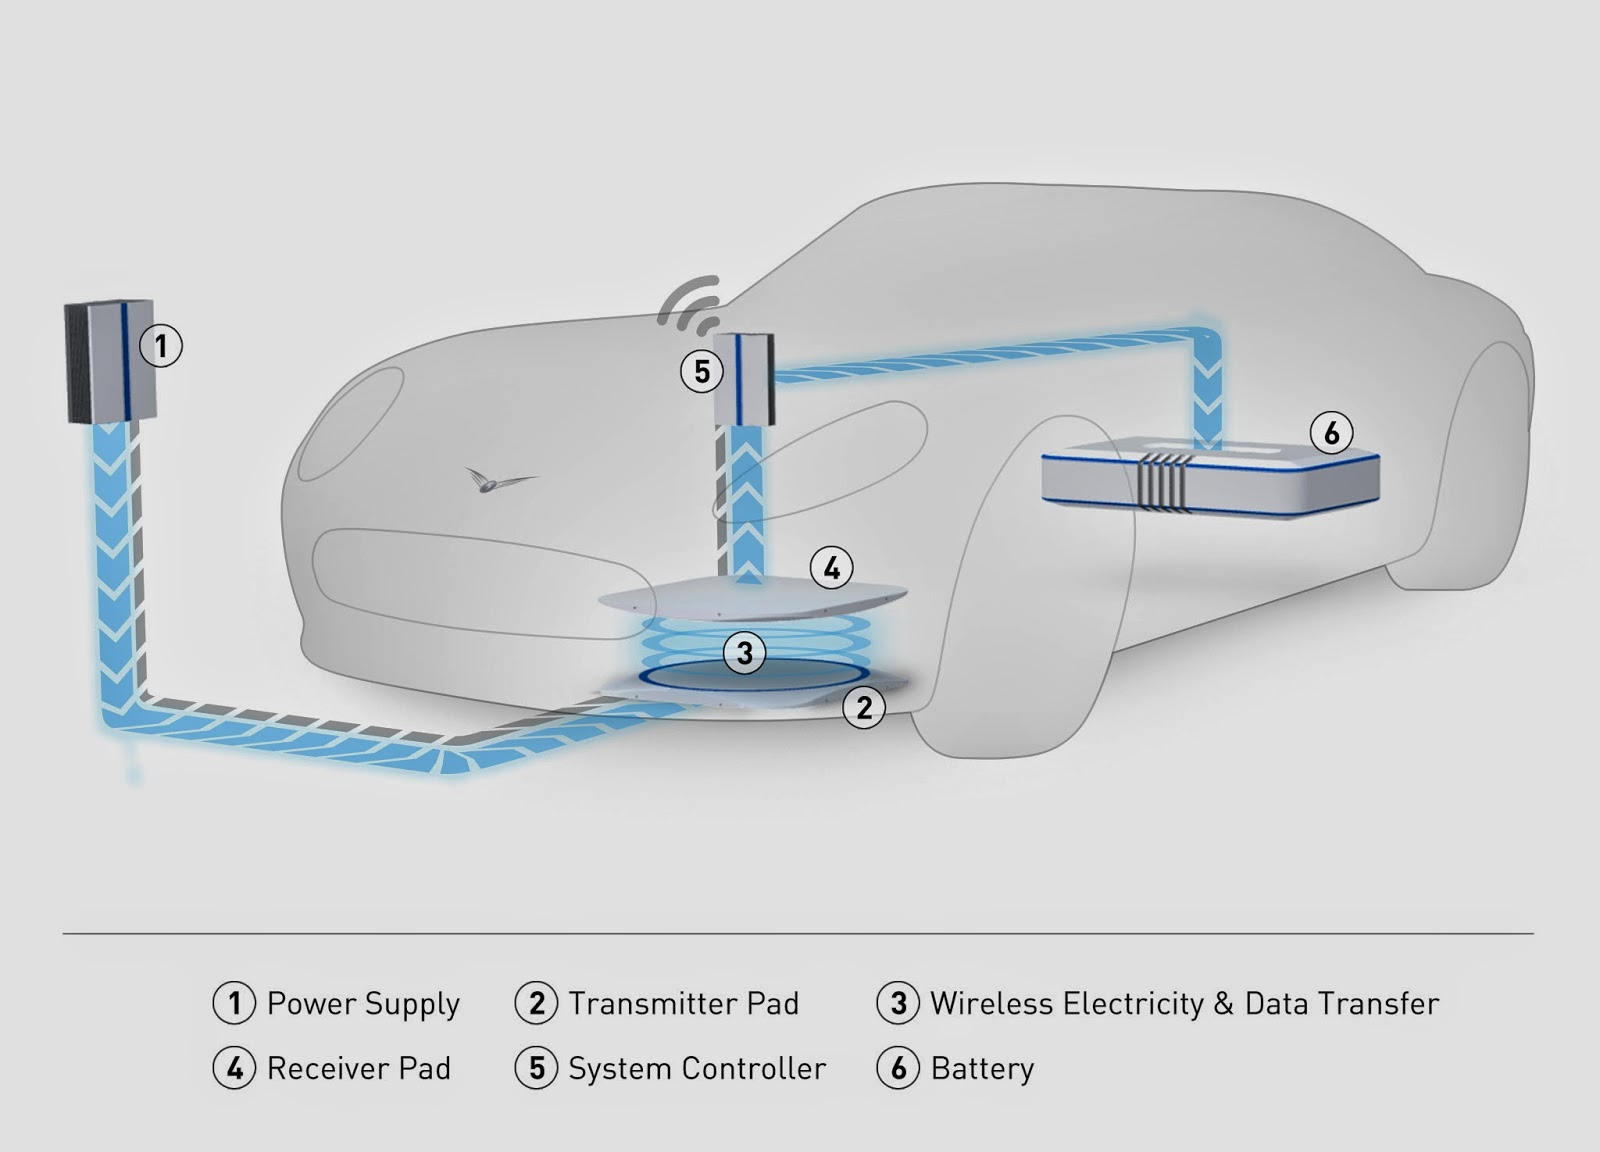 HELLA Developing Wireless Charging Systems For Electric Vehicles